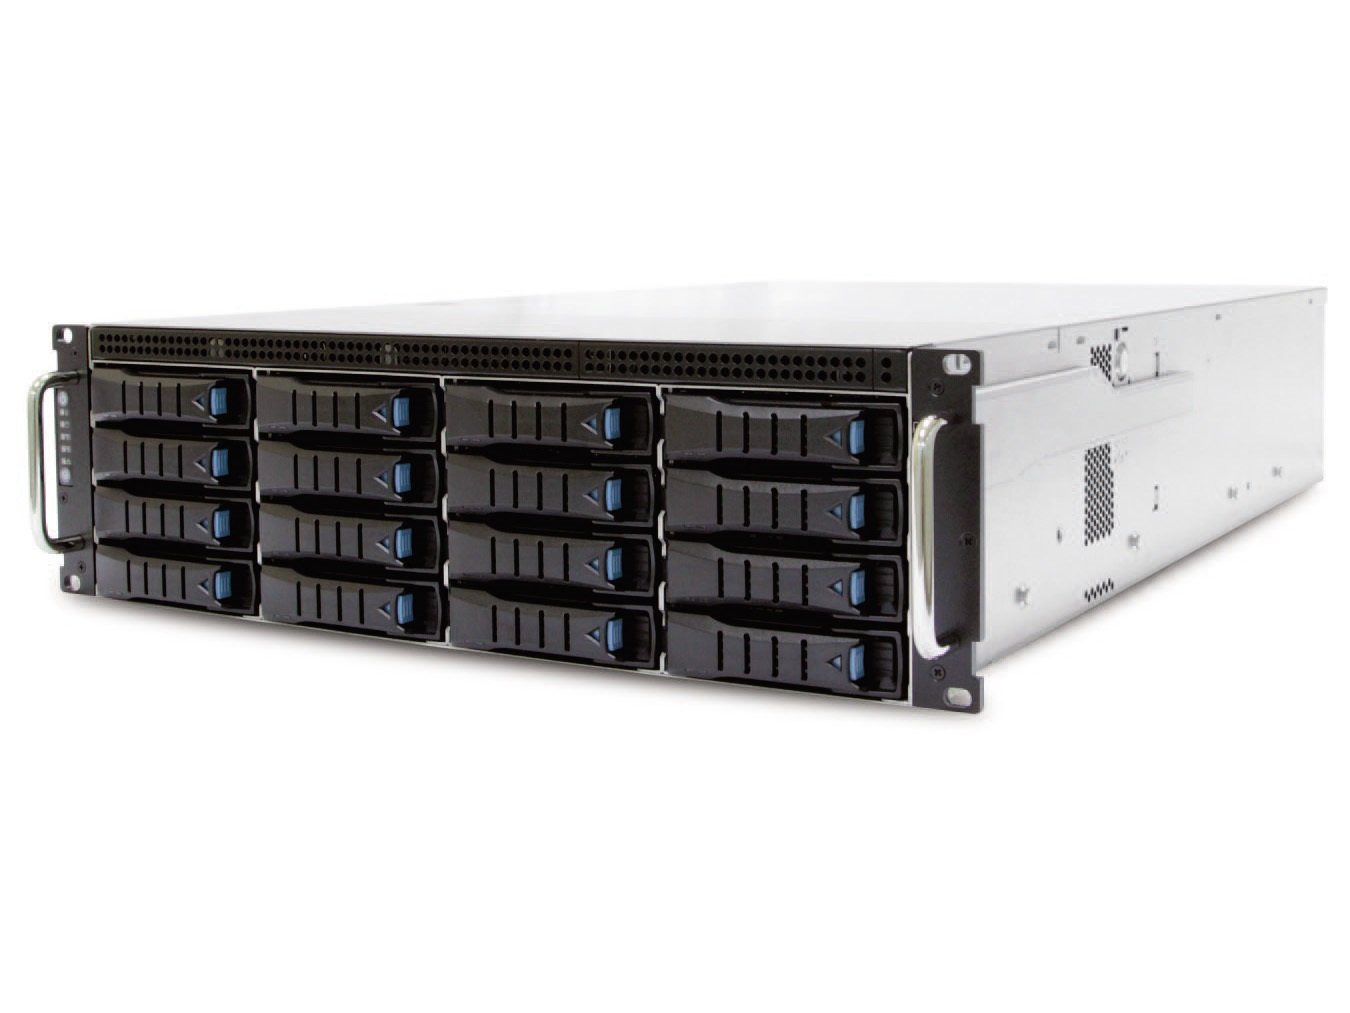 AIC RSC-3ET XE1-3ET00-03 3U 16-bay Storage Server Chassis